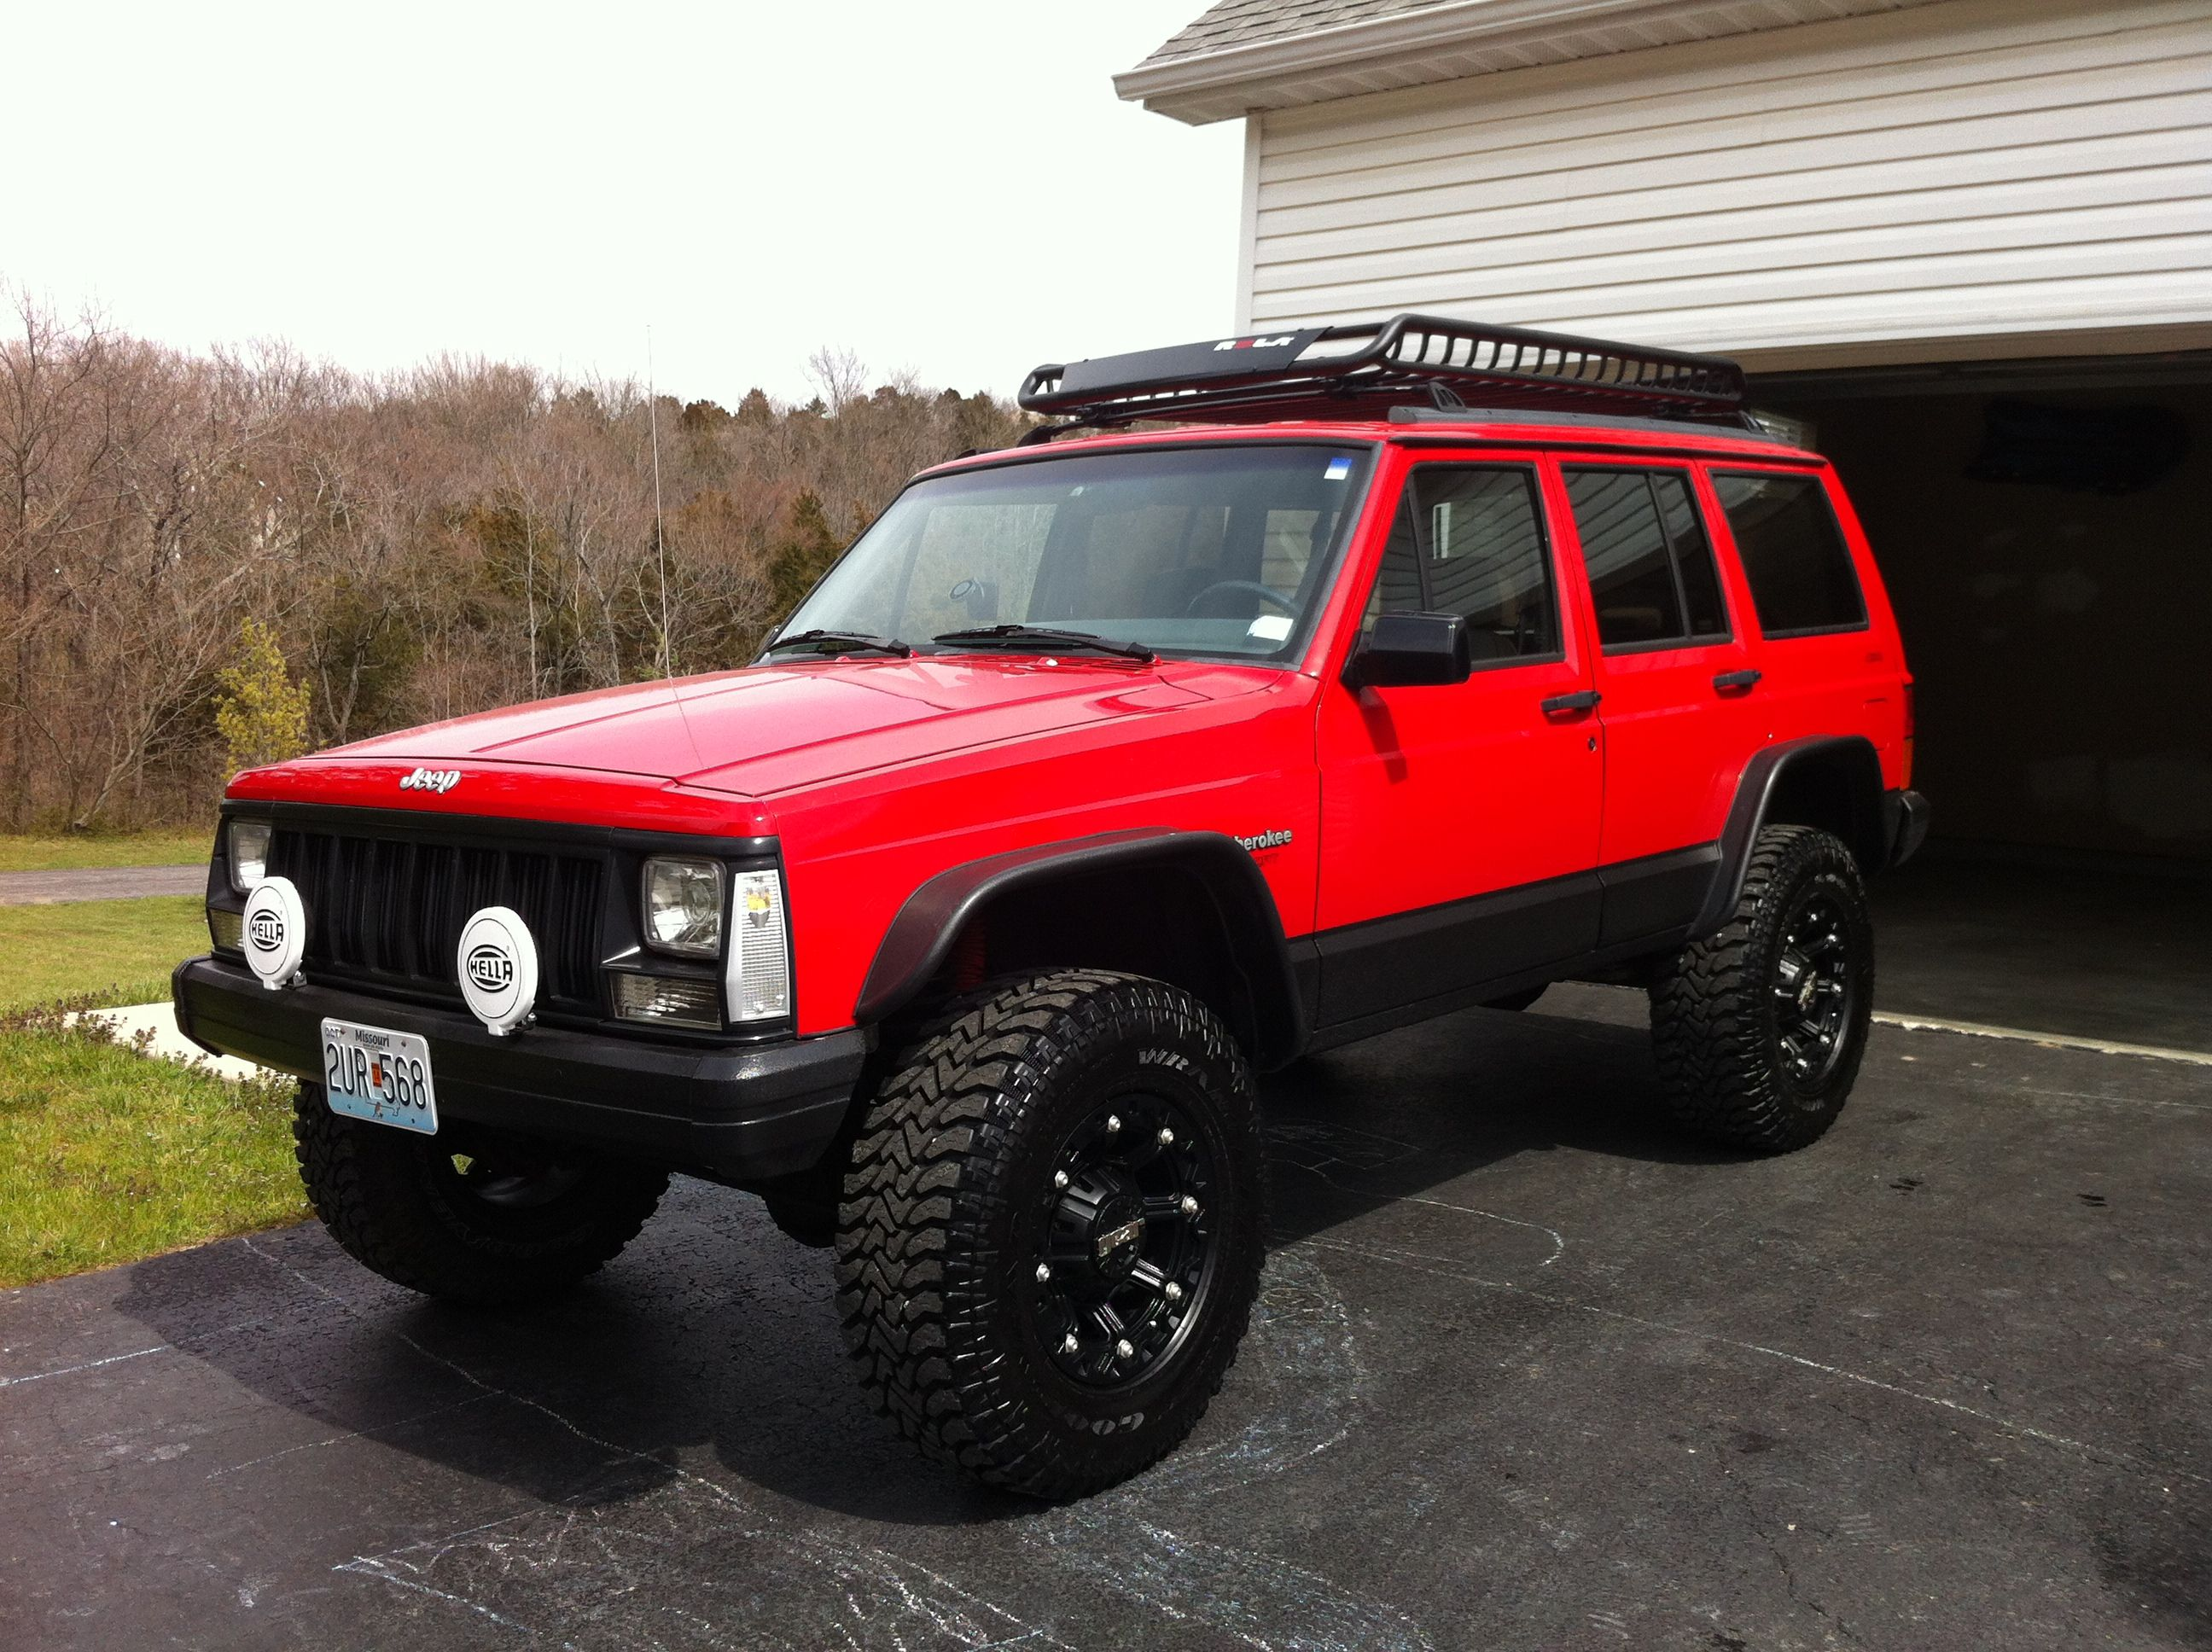 jeep cherokee 328 awesome cars in the world pinterest jeeps cherokee and jeep cherokee xj. Black Bedroom Furniture Sets. Home Design Ideas